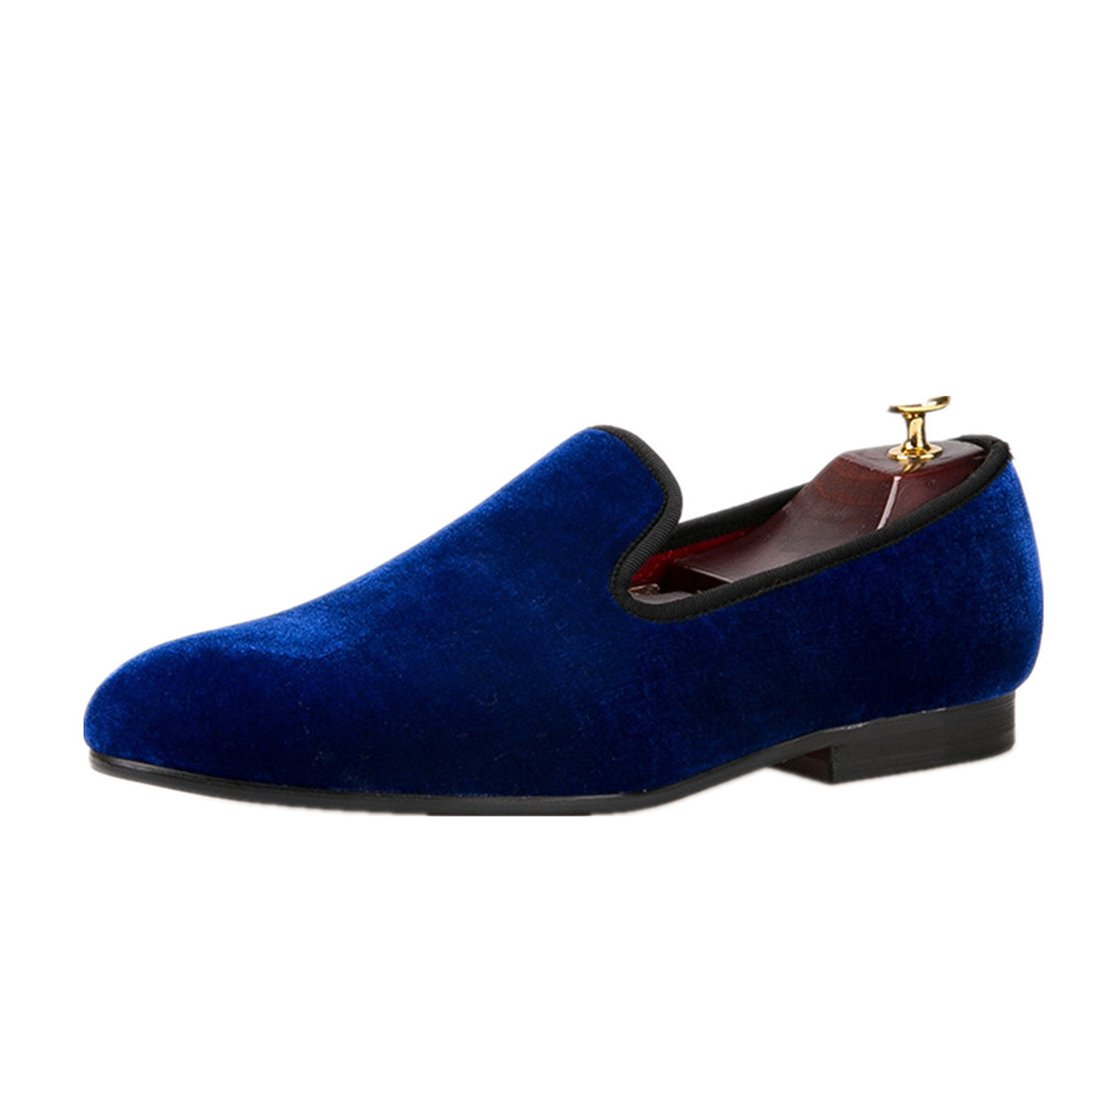 HI&HANN Colorful Men Velvet Loafers Men Dress Wedding and Party Shoes Men's Flats Male Smoking slippers Casual Shoes-11.5-Blue by HI&HANN